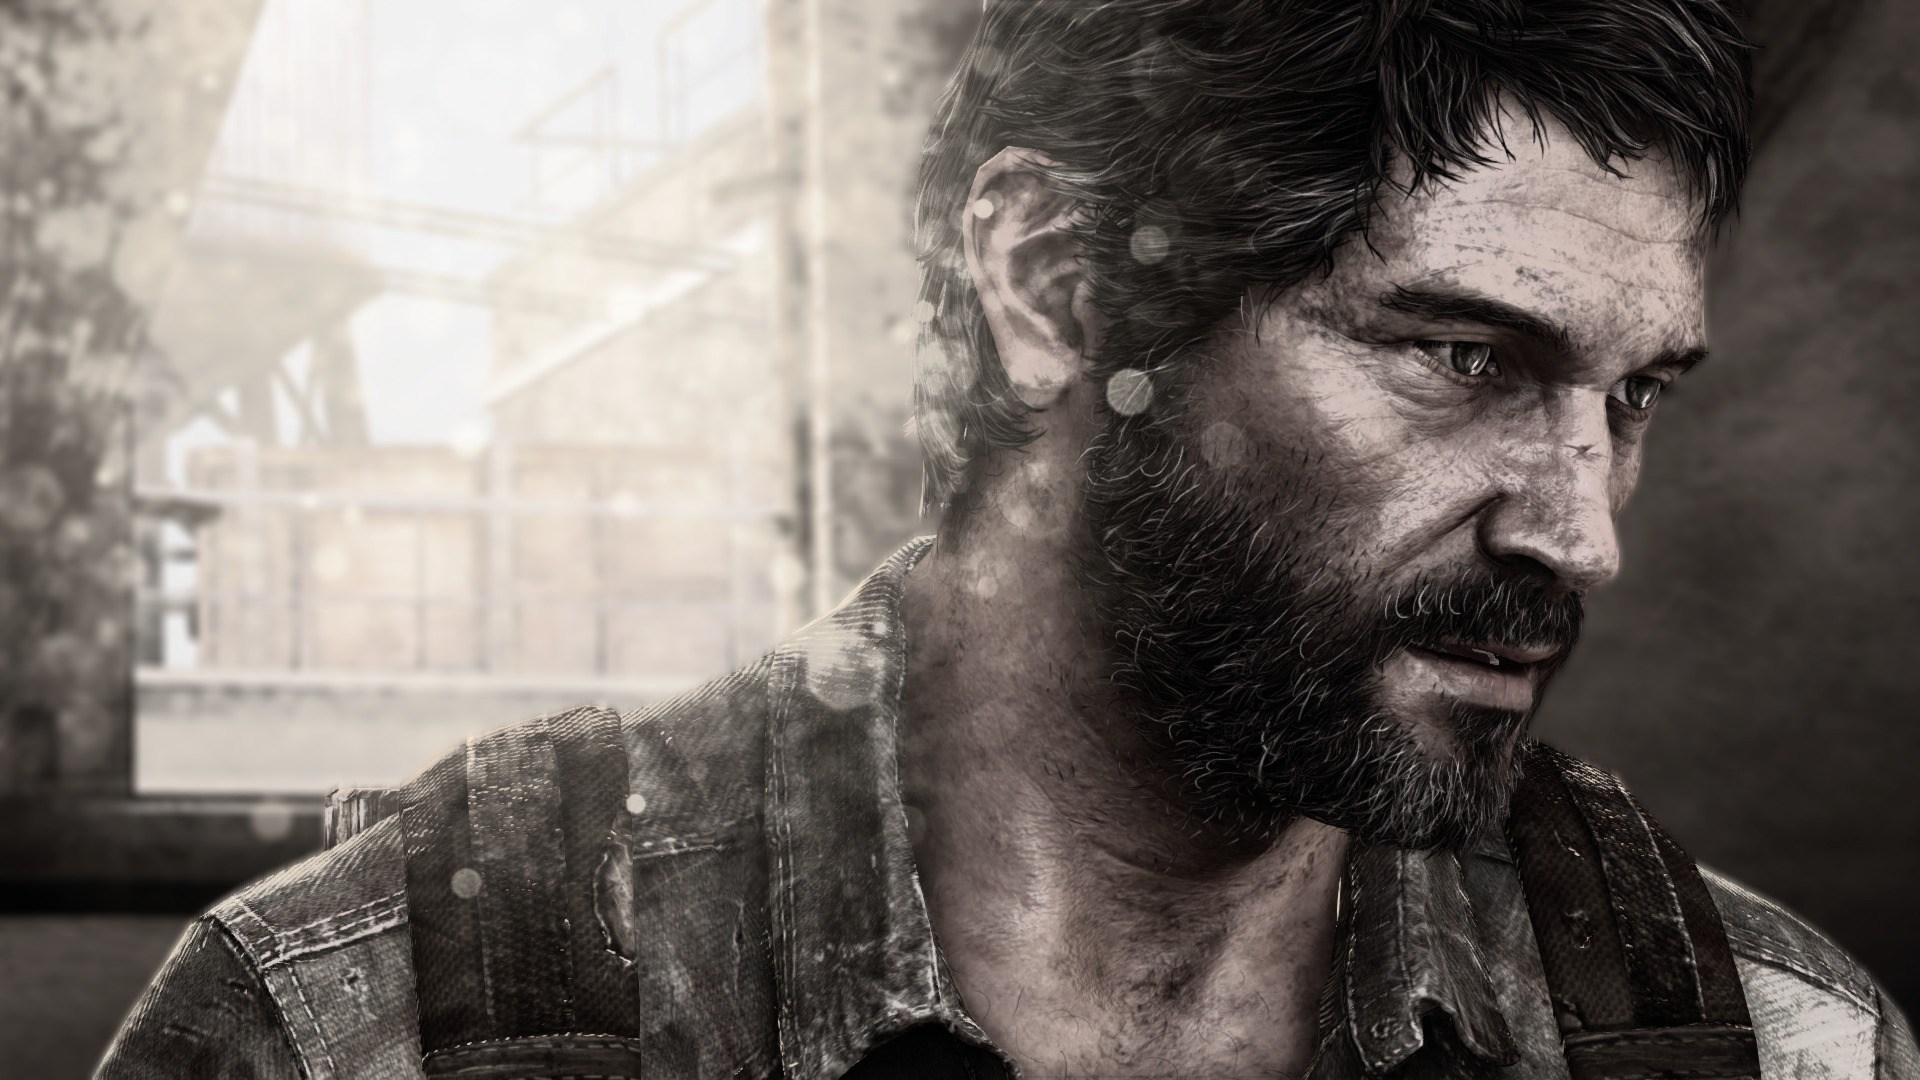 'The Last of Us Part 2' Trailer.